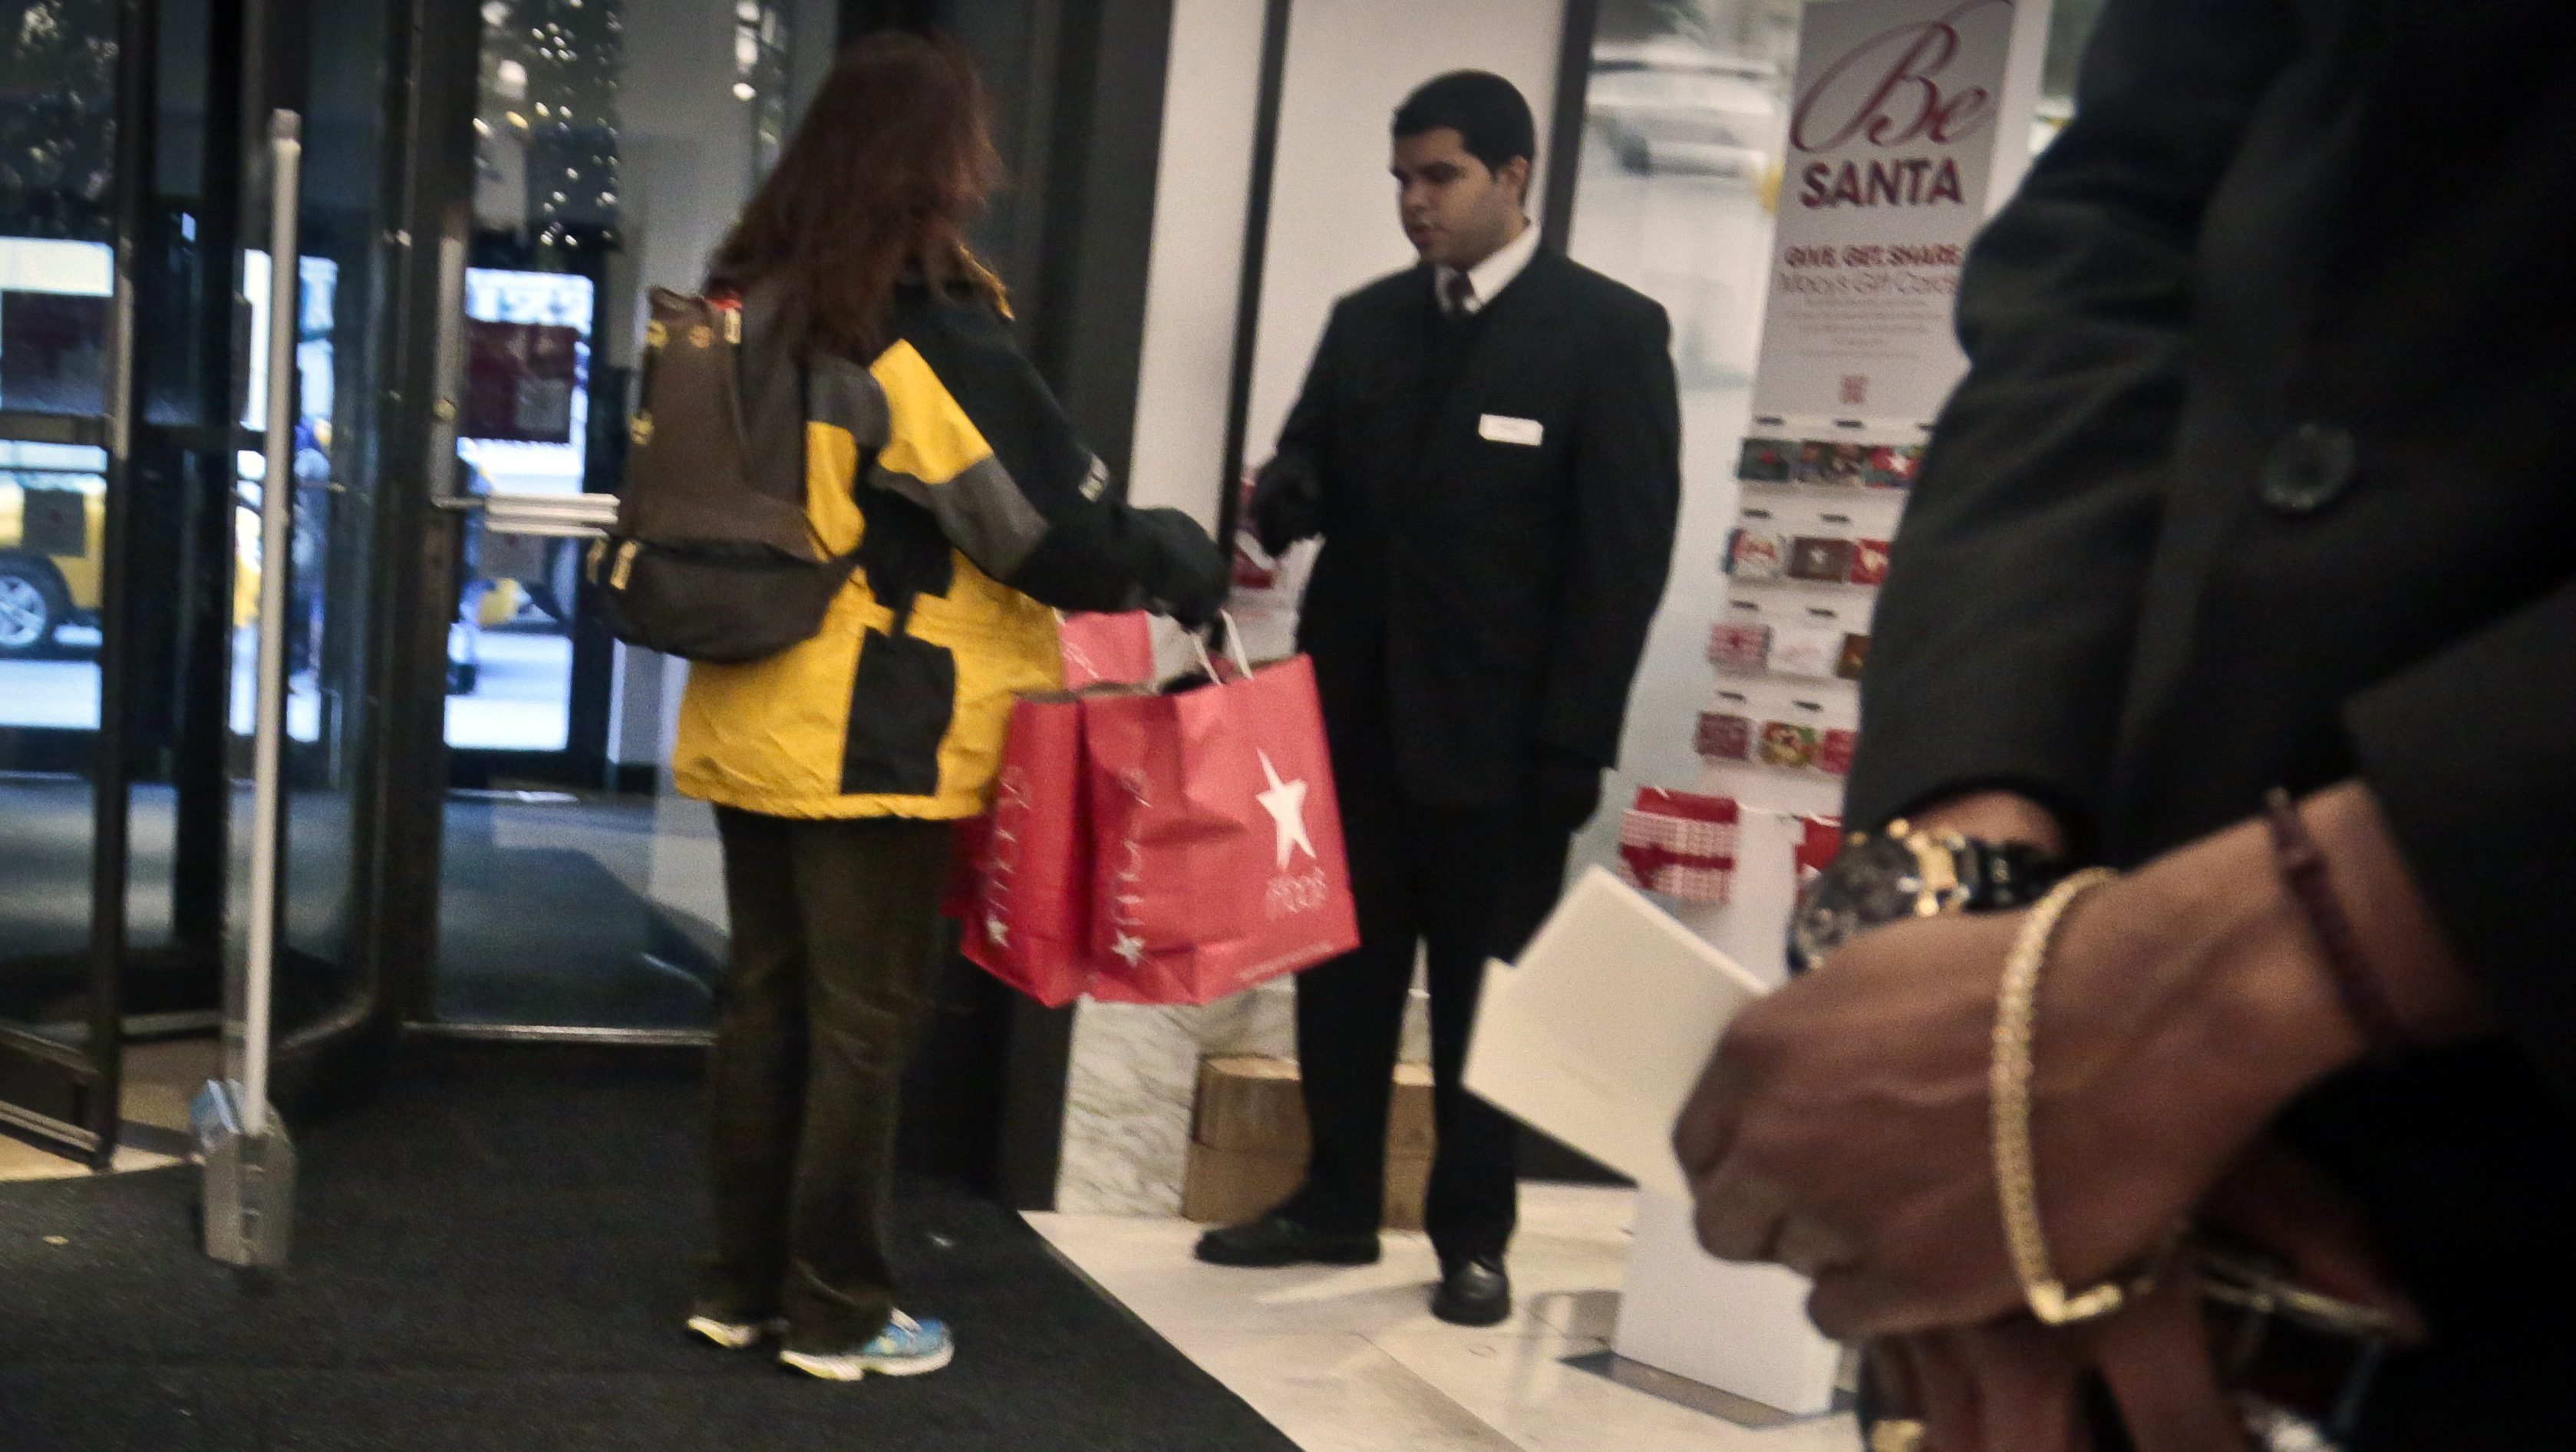 In this Dec. 13, 2013 photo, a security agent checks the bags of a shopper at Macy's in New York.  Claims over racial profiling at department stores in New York have helped expose the practice in more than 40 states of retailers holding shoplifting suspects and assessing fines, even if a person hasn't yet technically stolen anything.  At Macy's flagship store, suspects are held in cells, asked to sign an admission of guilt and pay hundreds in fines. (AP Photo/Bebeto Matthews)